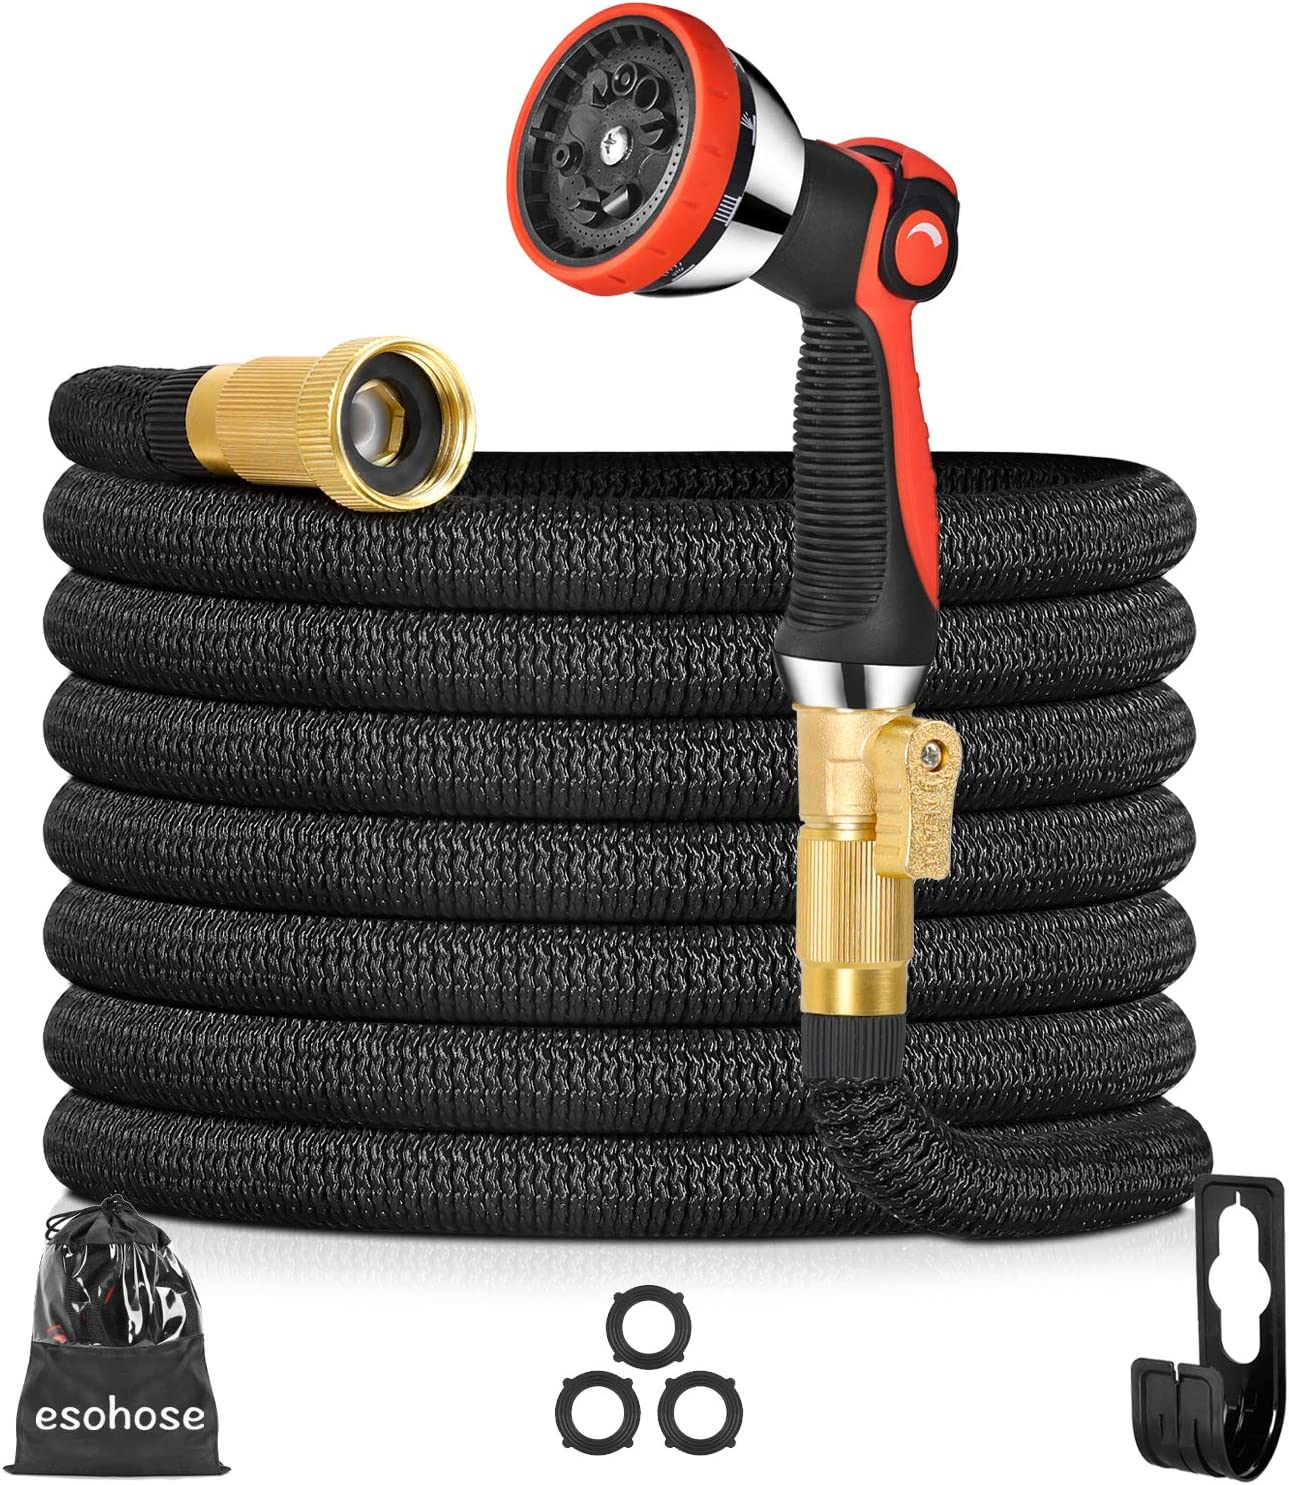 Expandable Garden Hose 50FT, Water Hose for Lawns and Pet Care, 50 Foot Collapsible Hose, Outdoor Hoses That Shrink, Hoses for Yard (50)